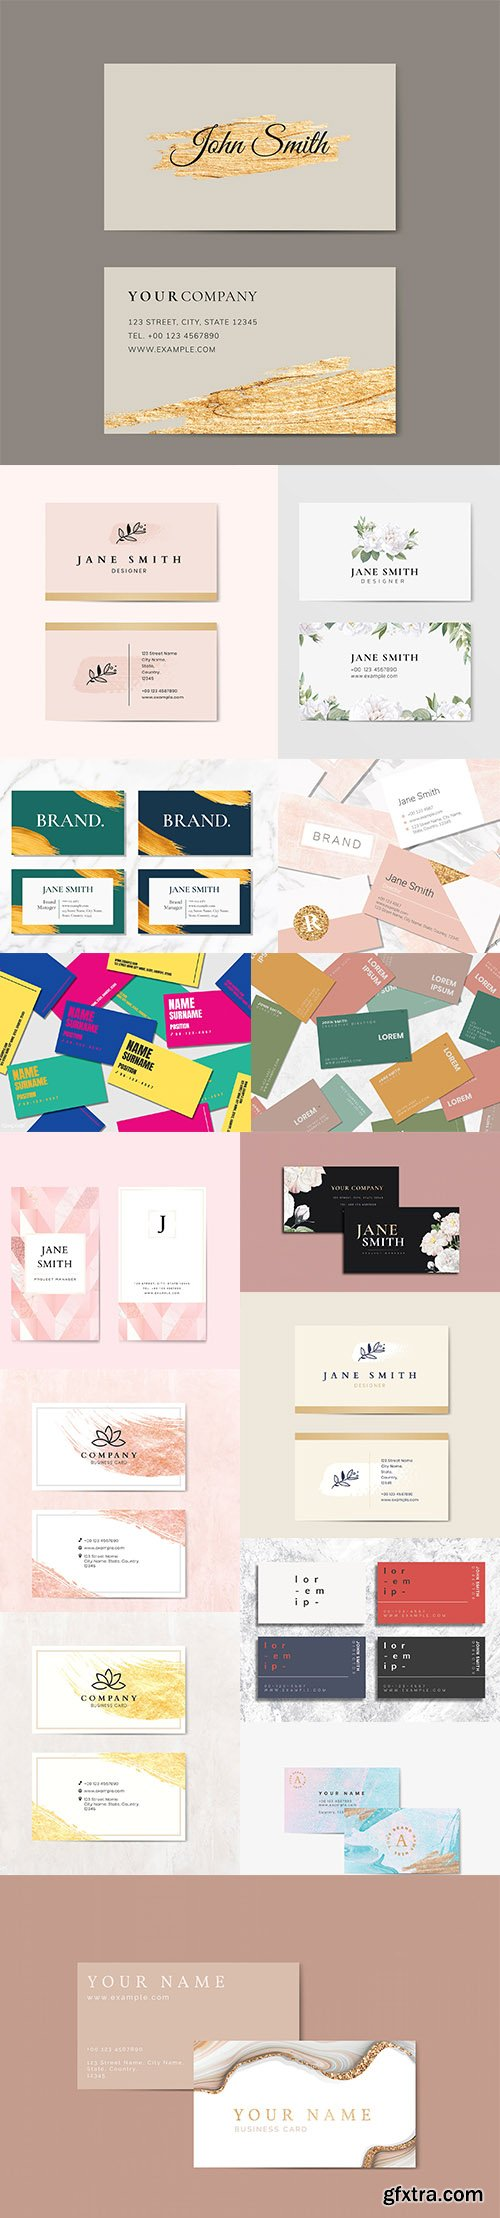 Set of Professional Business Card Templates vol5